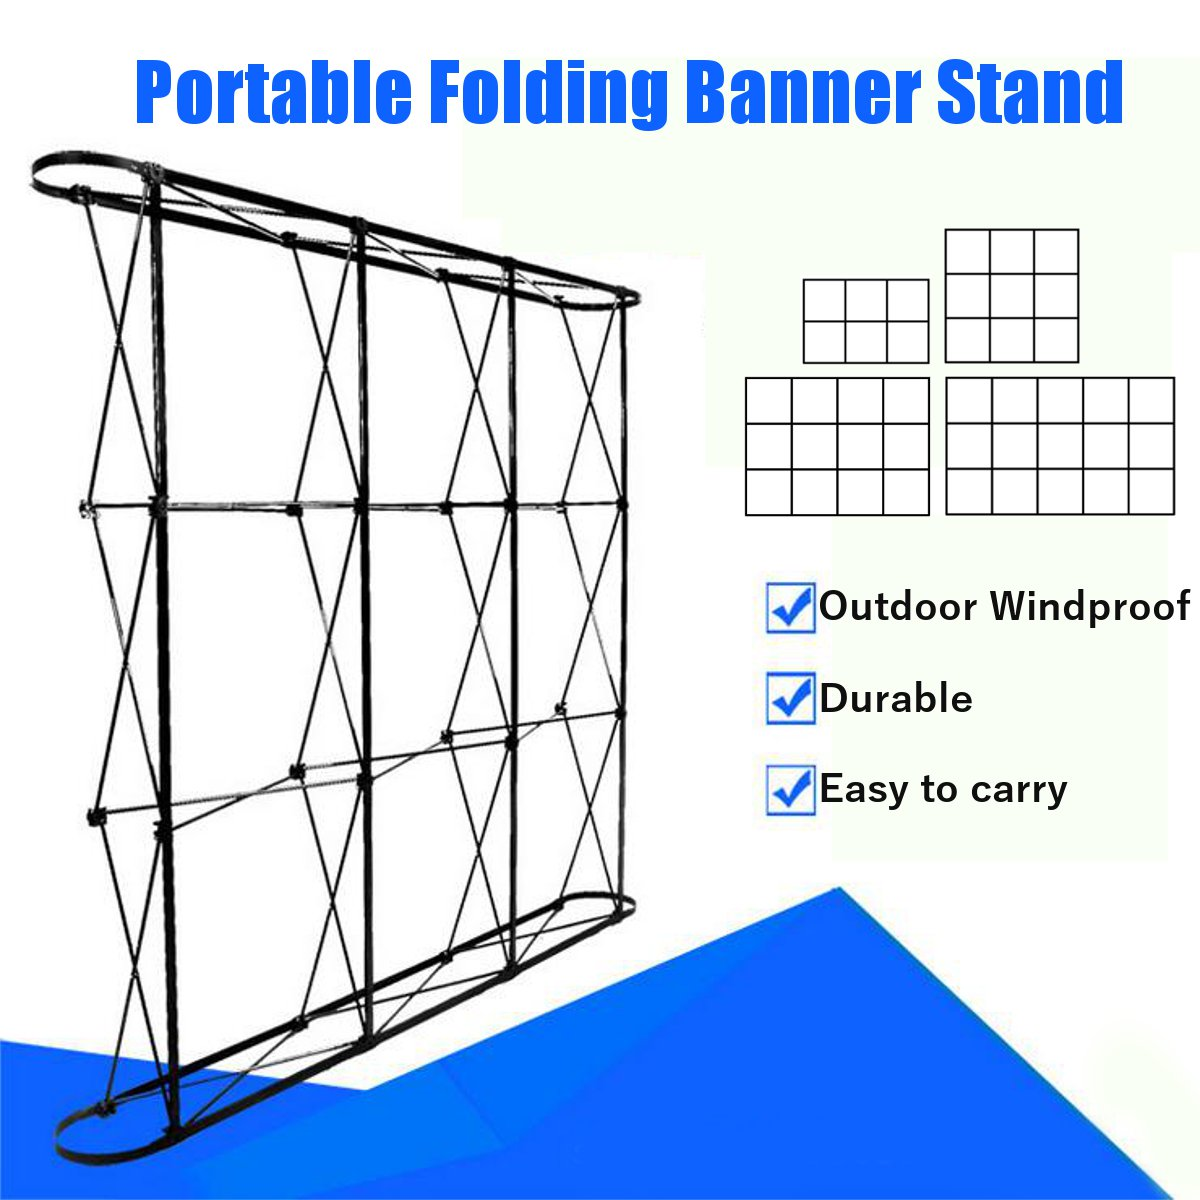 4 Sizes Portable Folding Banner Stand Wedding Party Wall Frame Backdrop Display Presentation Advertising Rack Stand Holder